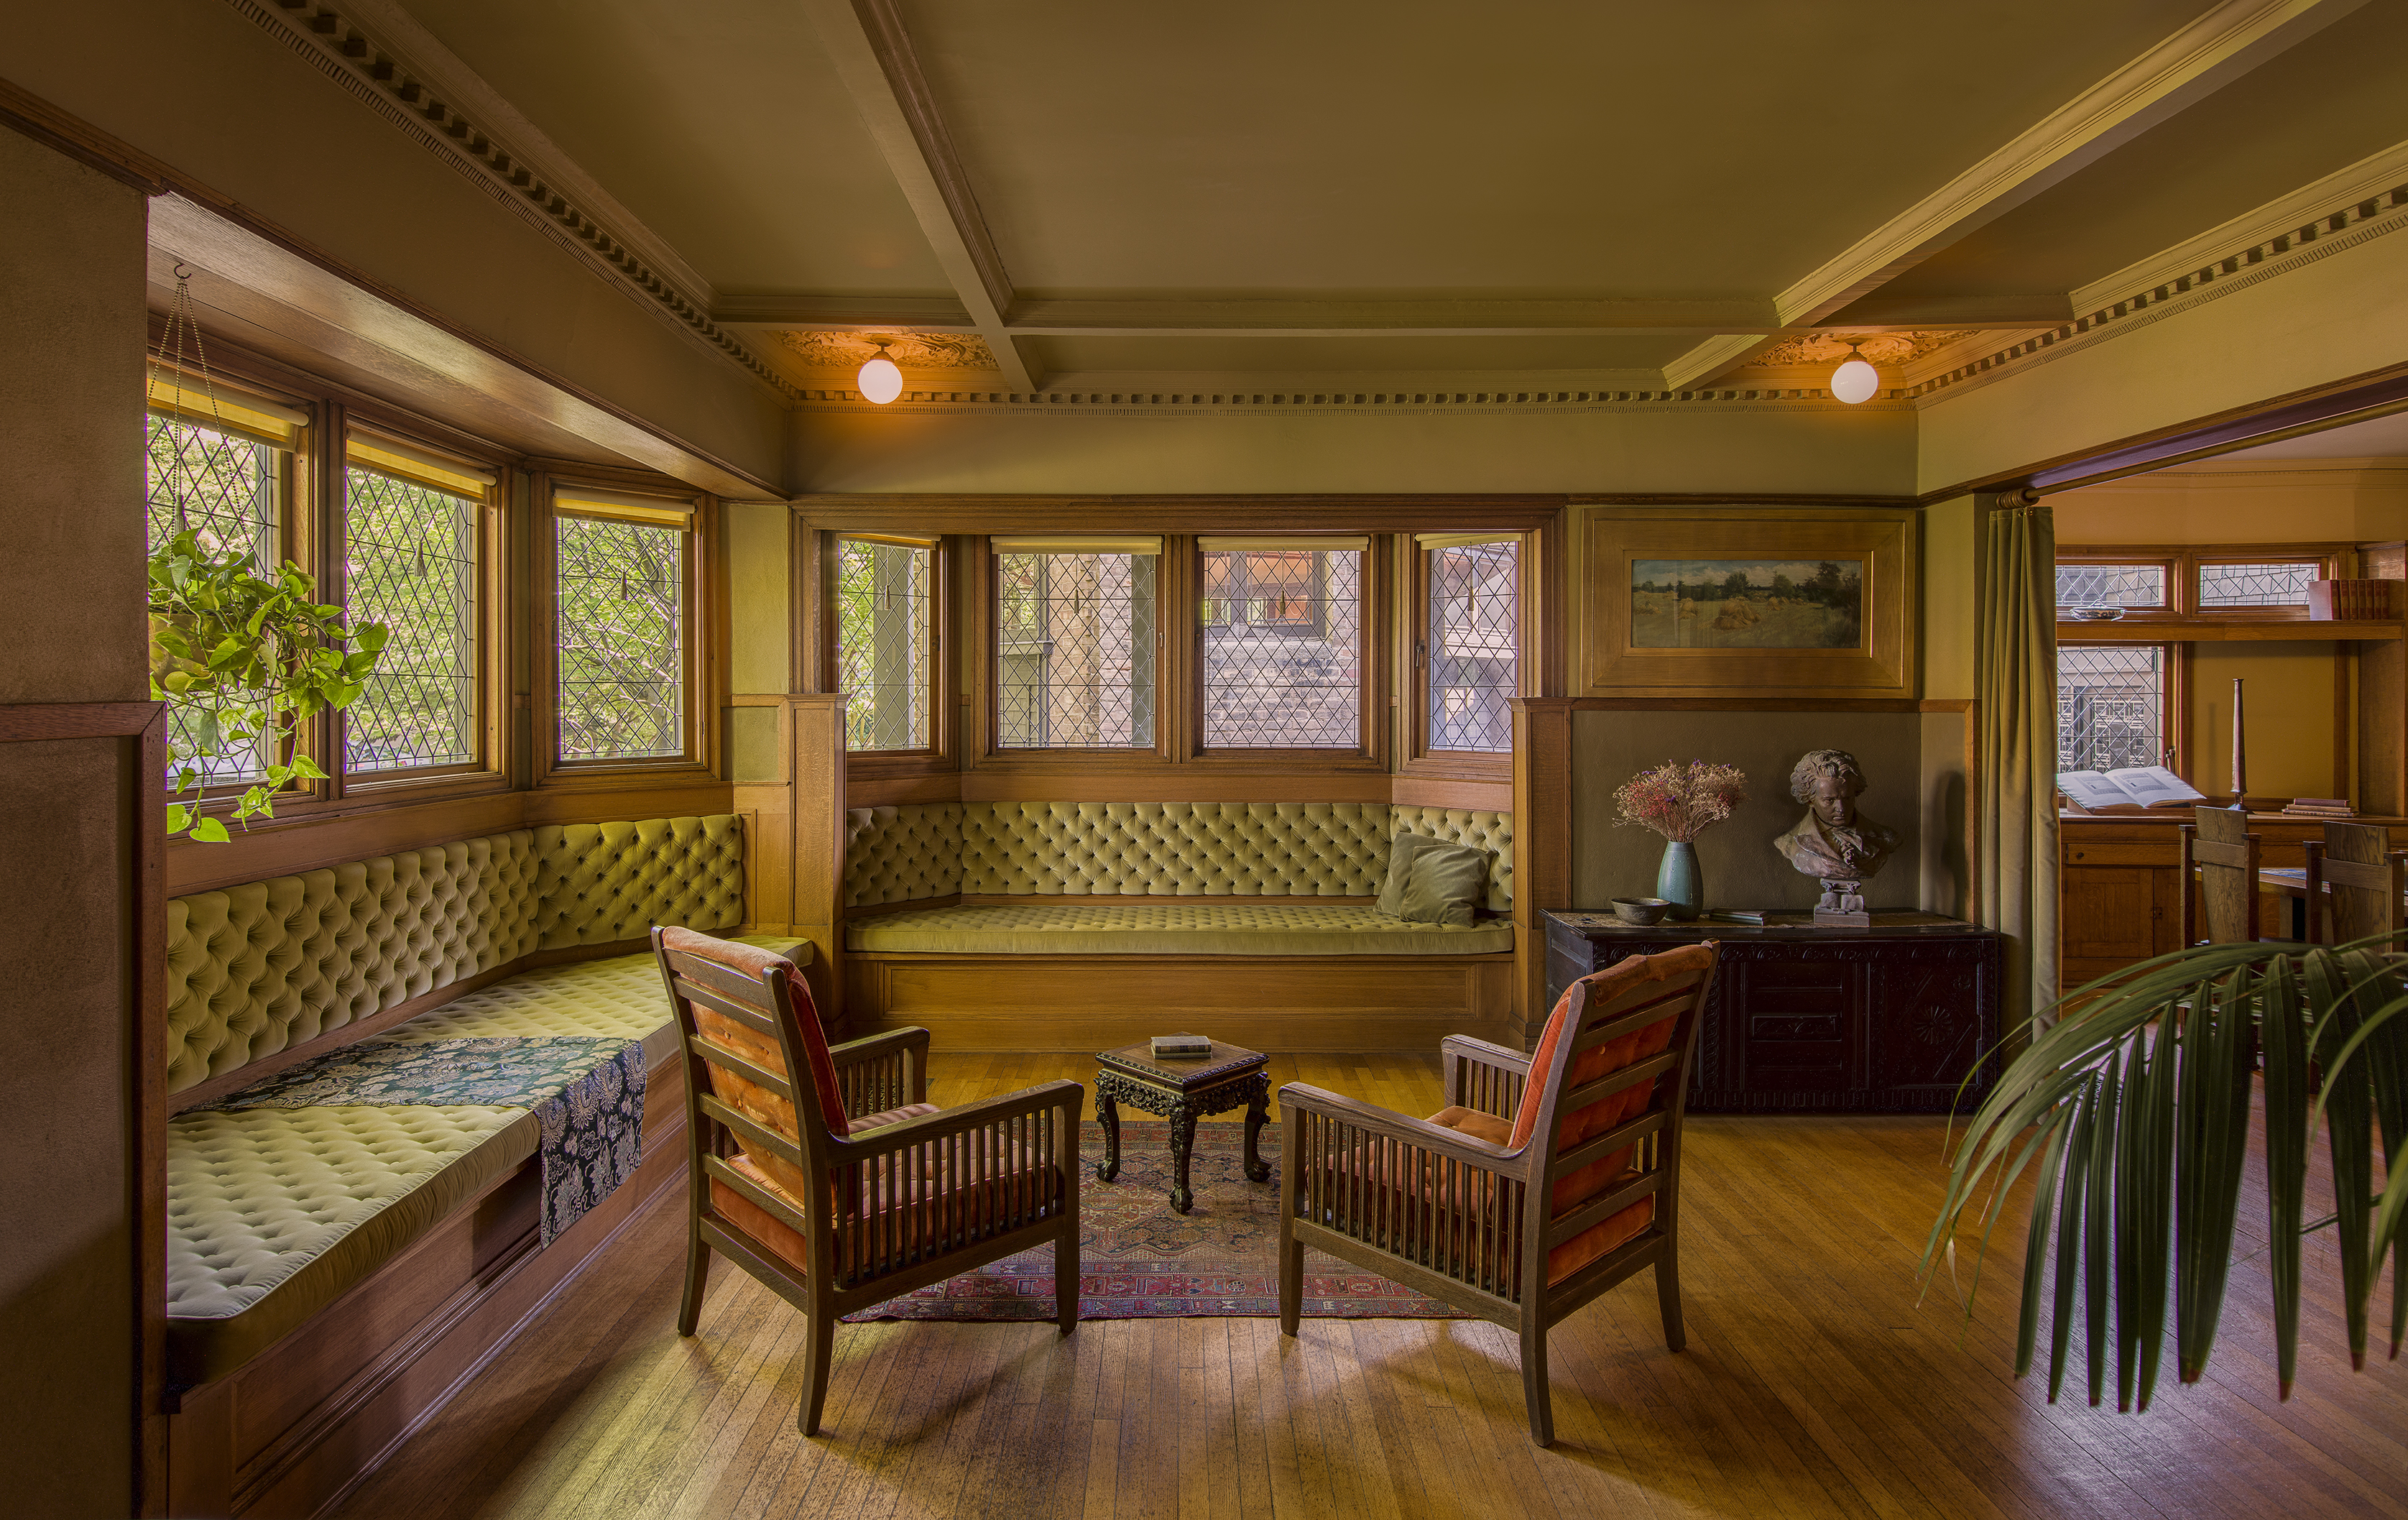 Living room of Frank Lloyd Wright's home in Oak Park